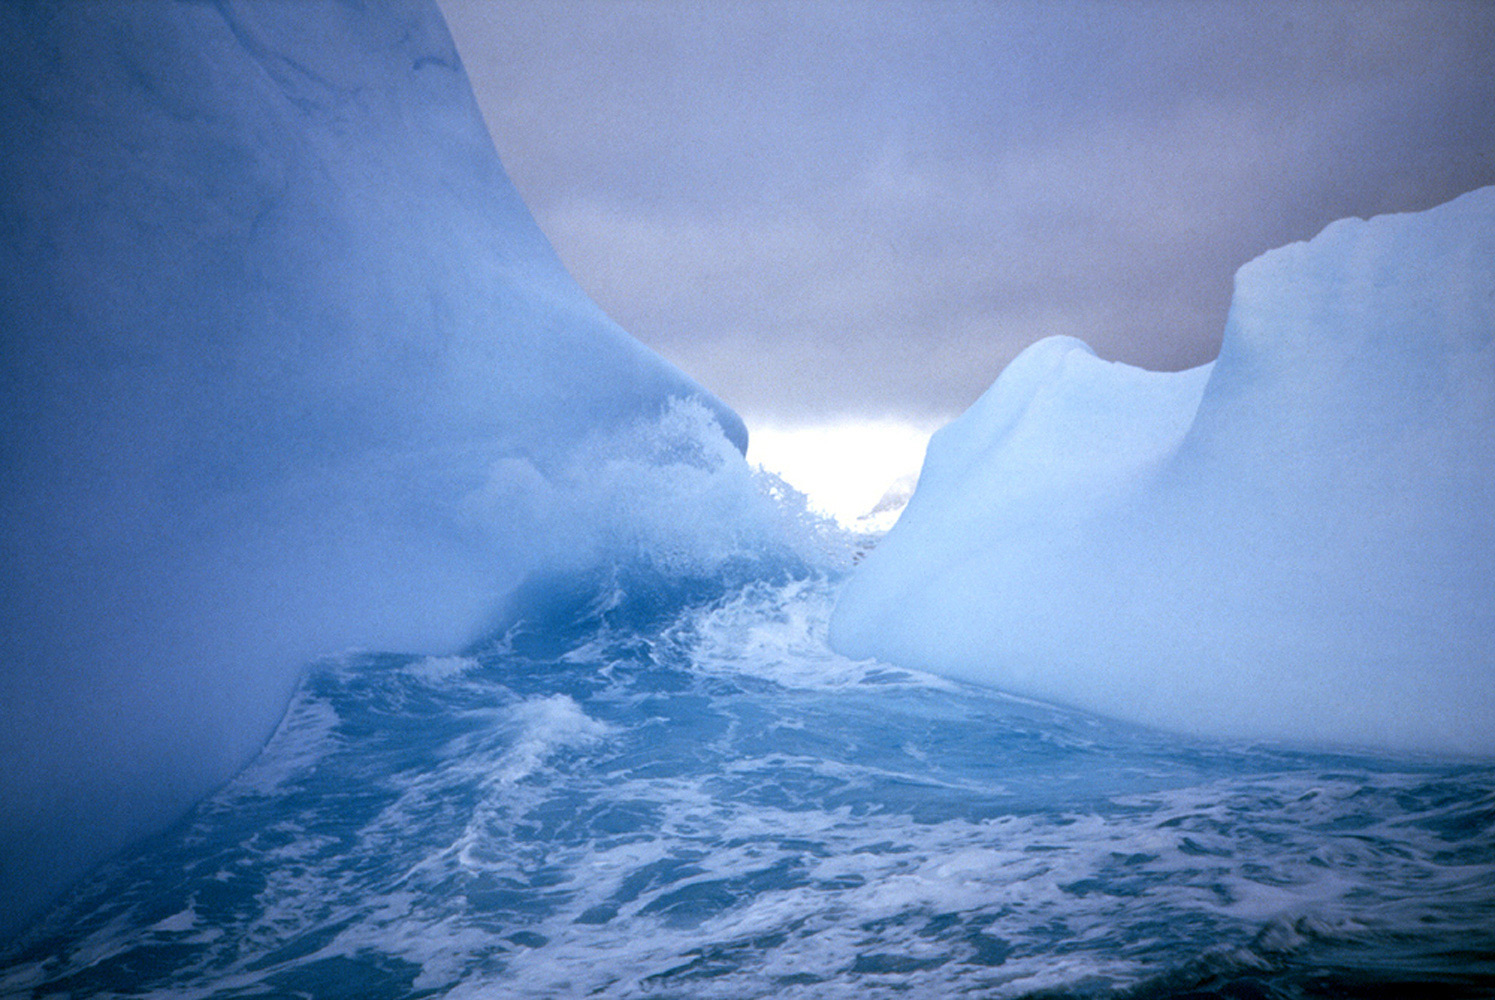 wave wash on an iceberg